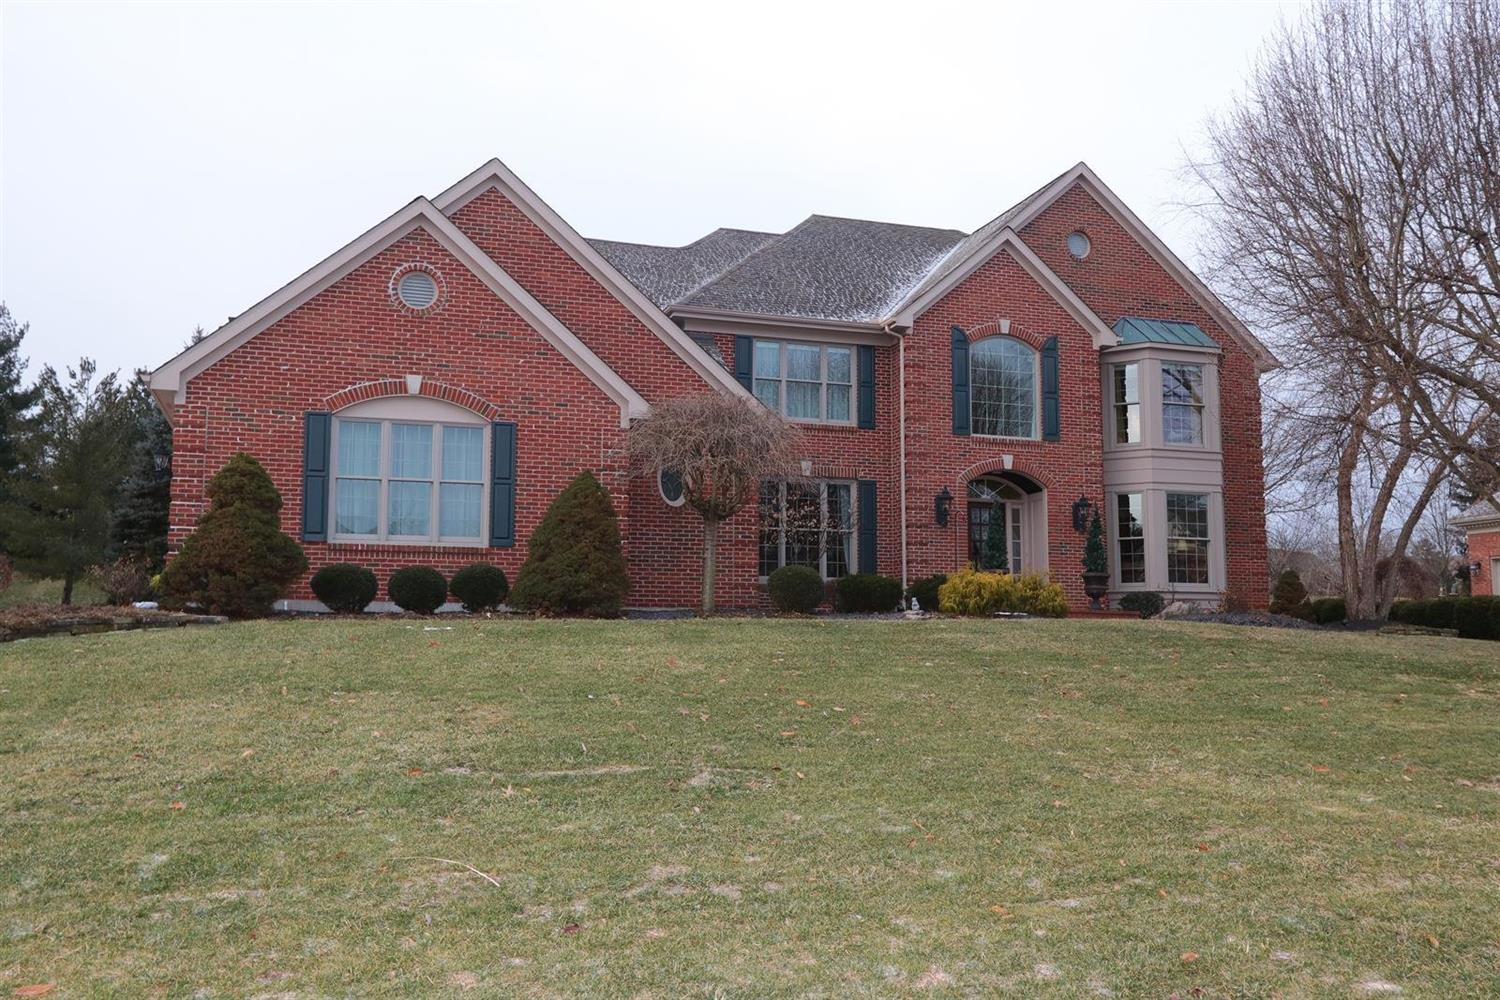 Property for sale at 8147 Startinggate Lane, Sycamore Twp,  Ohio 45249